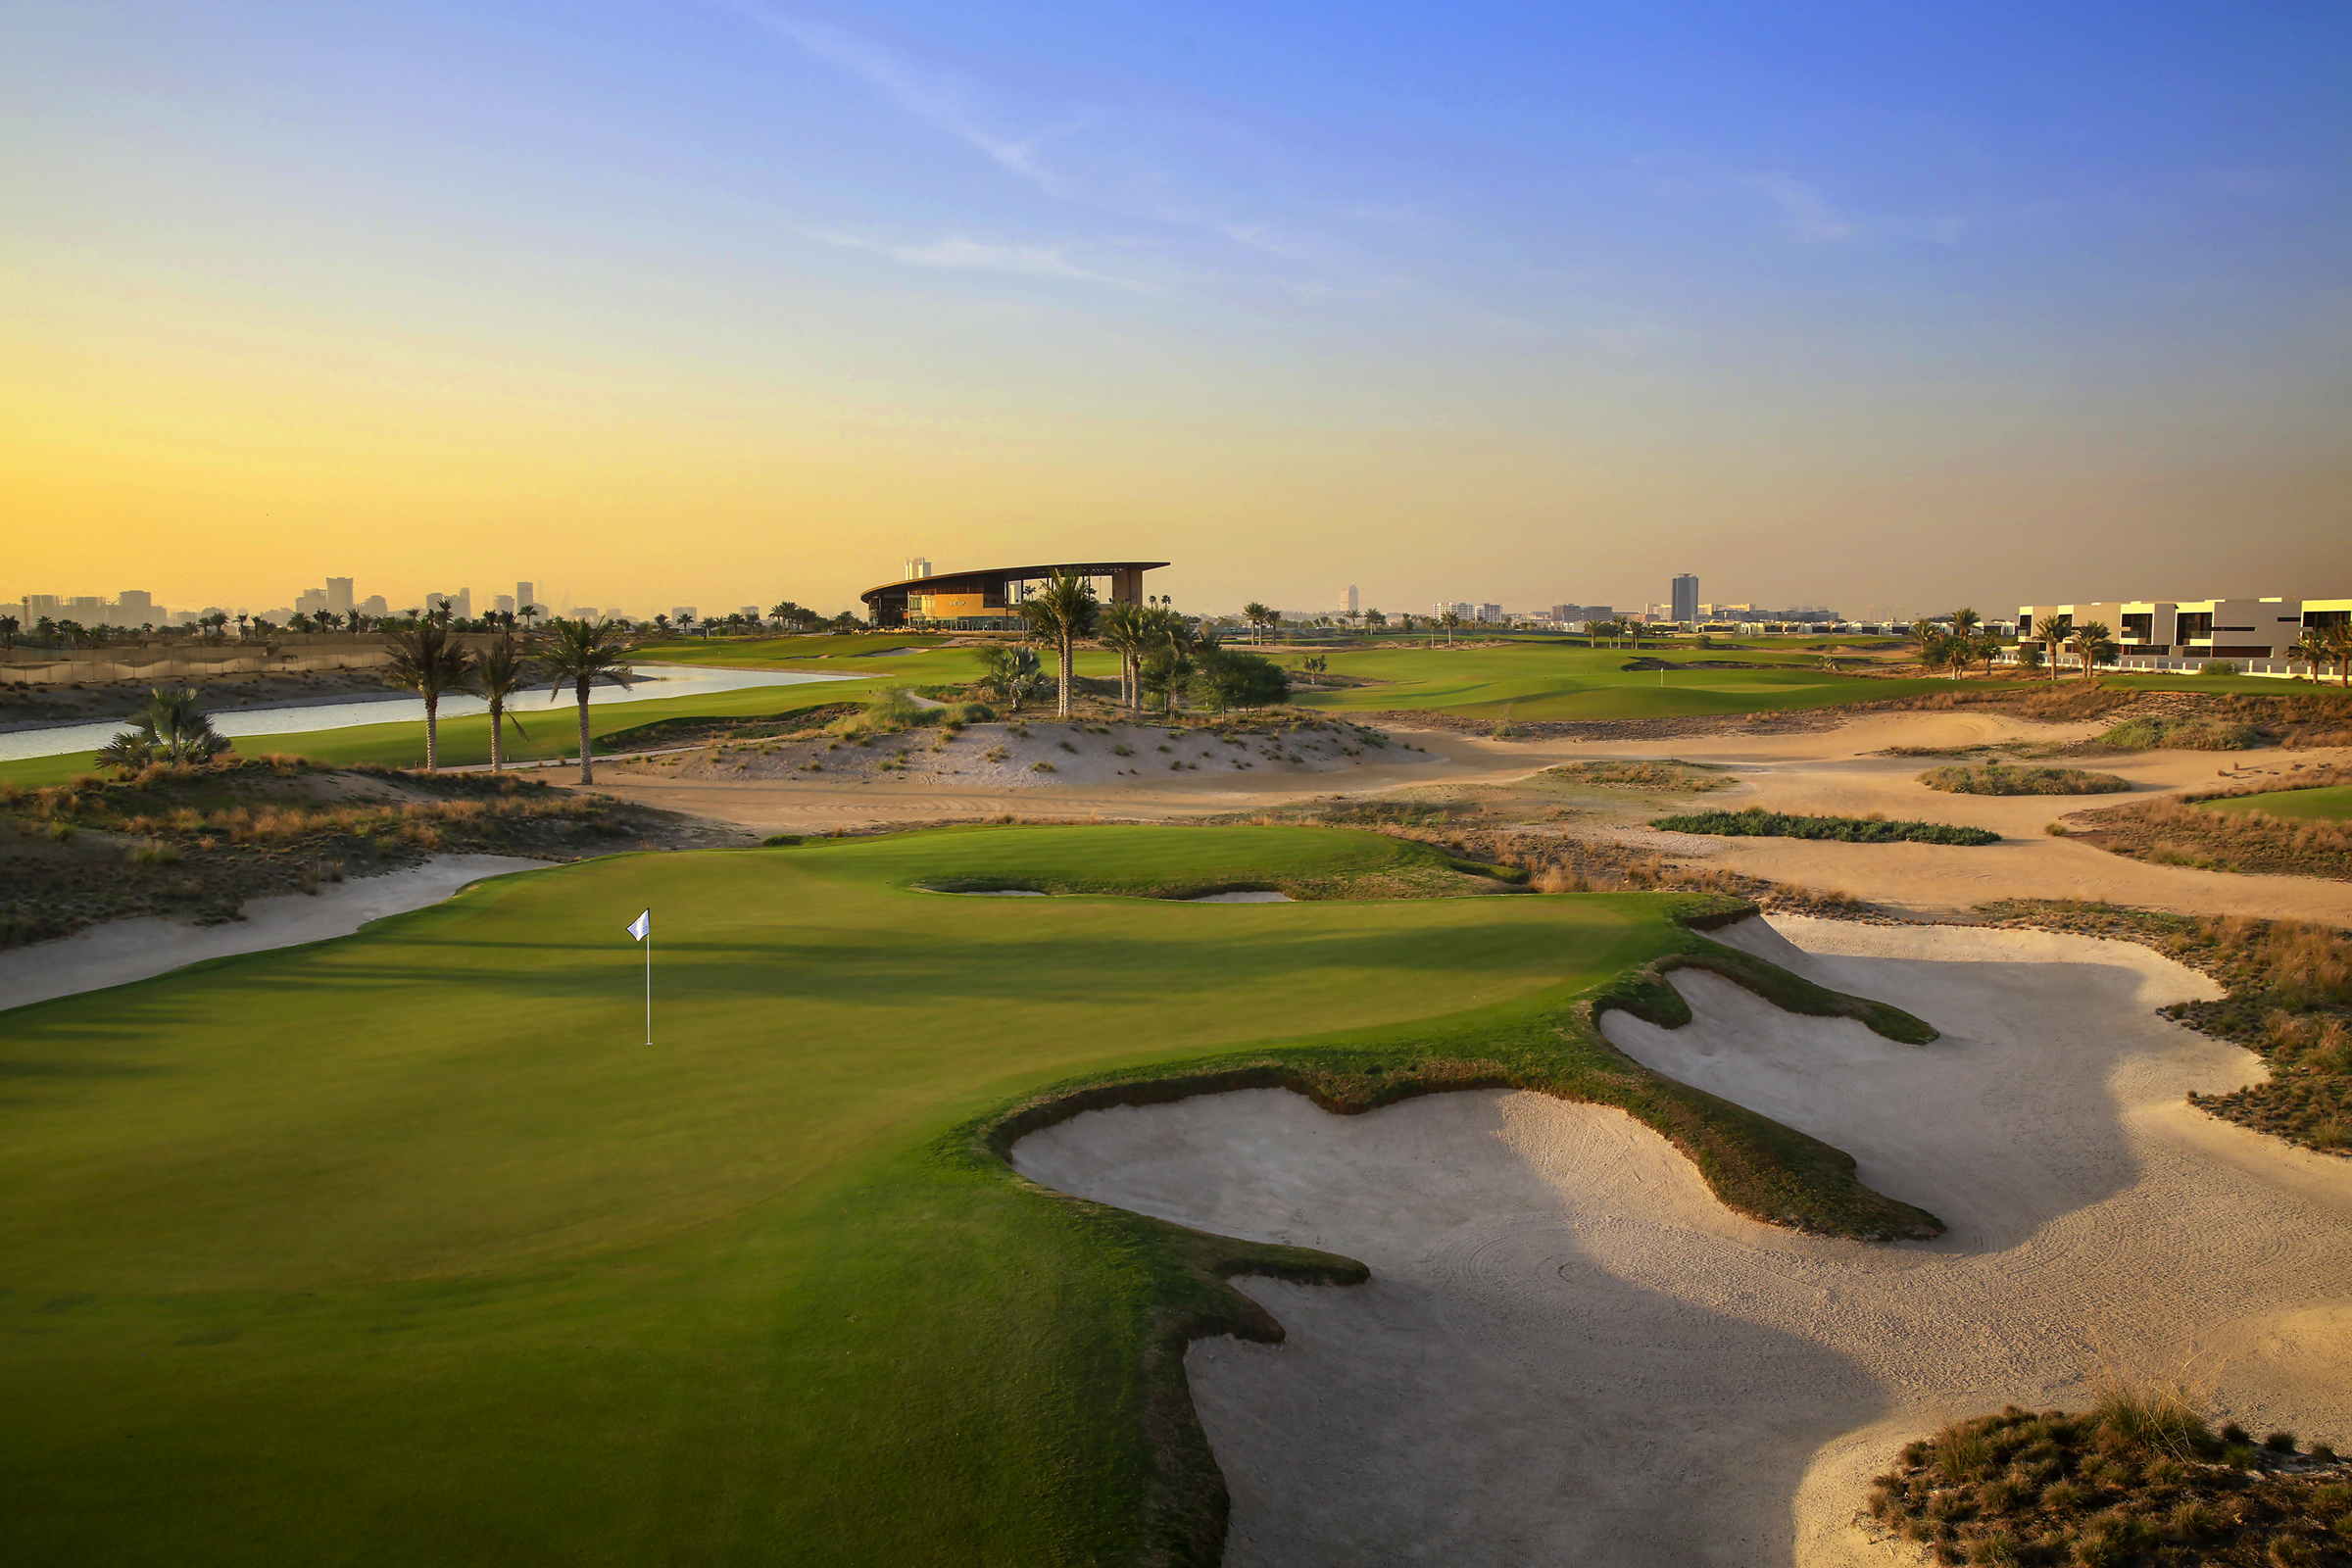 Trump International Golf Club Dubai delights with